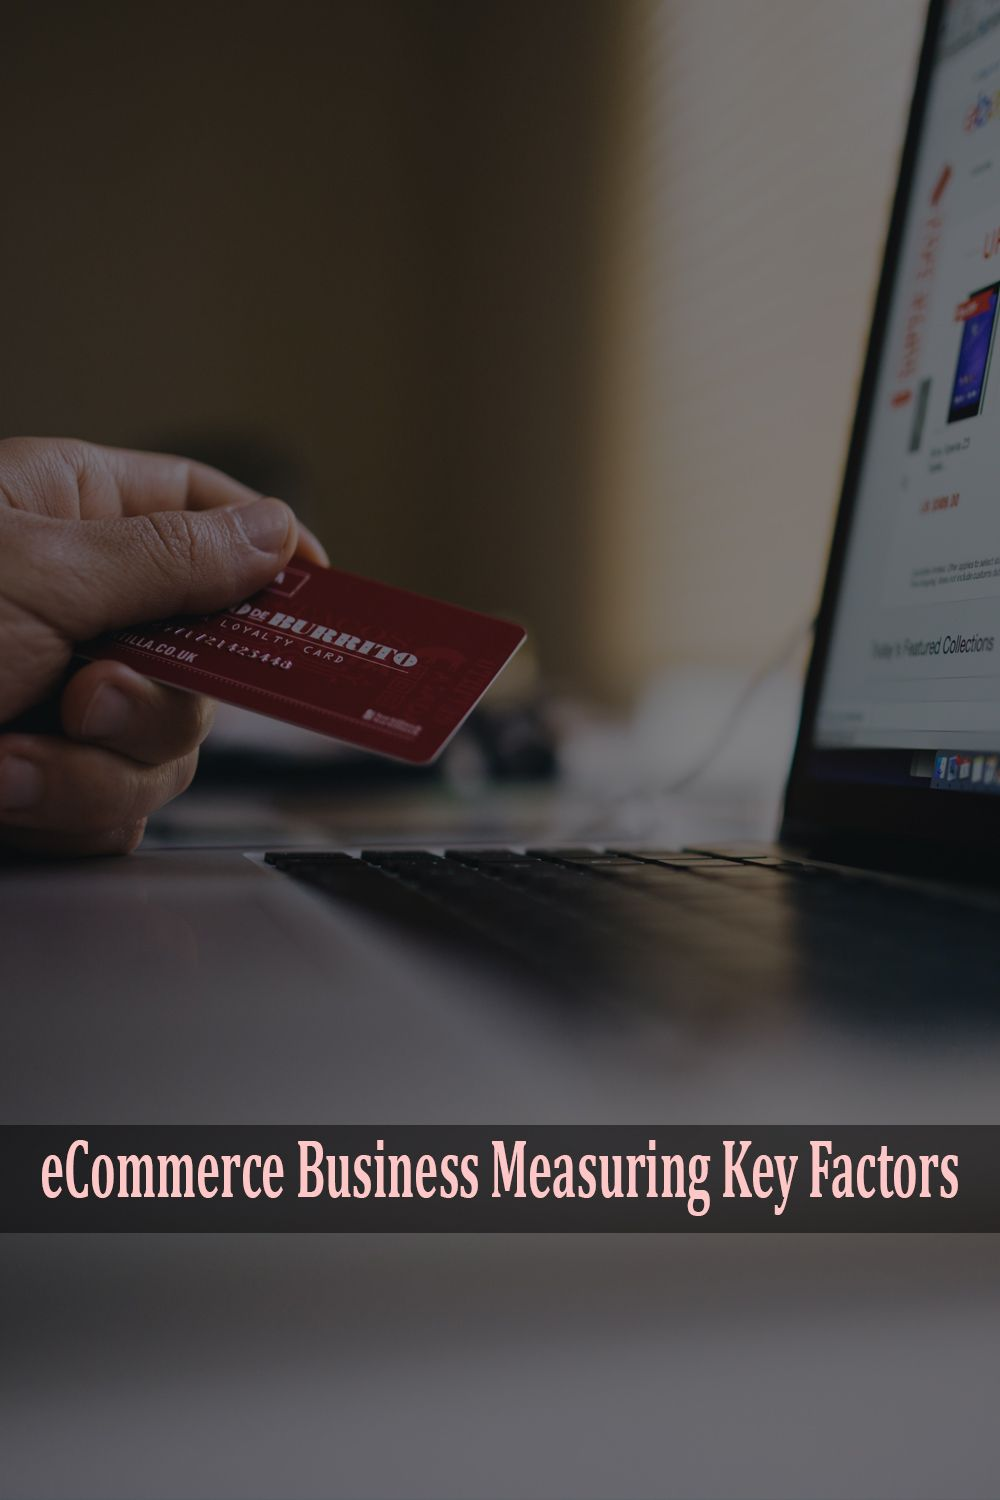 Ecommerce business grows at an annual rate of 13%, according to studies, but it is also true that 80-90% of eCommerce companies fail. In this blog, we have discussed some key factors to consider if you want to measure your e-commerce success. These factors would give a true insight into your e-commerce business at each stage of its growth. #ecommercetips #ecommerce #ecommercebusiness #keyfactorecommerce #tipsofecommerce